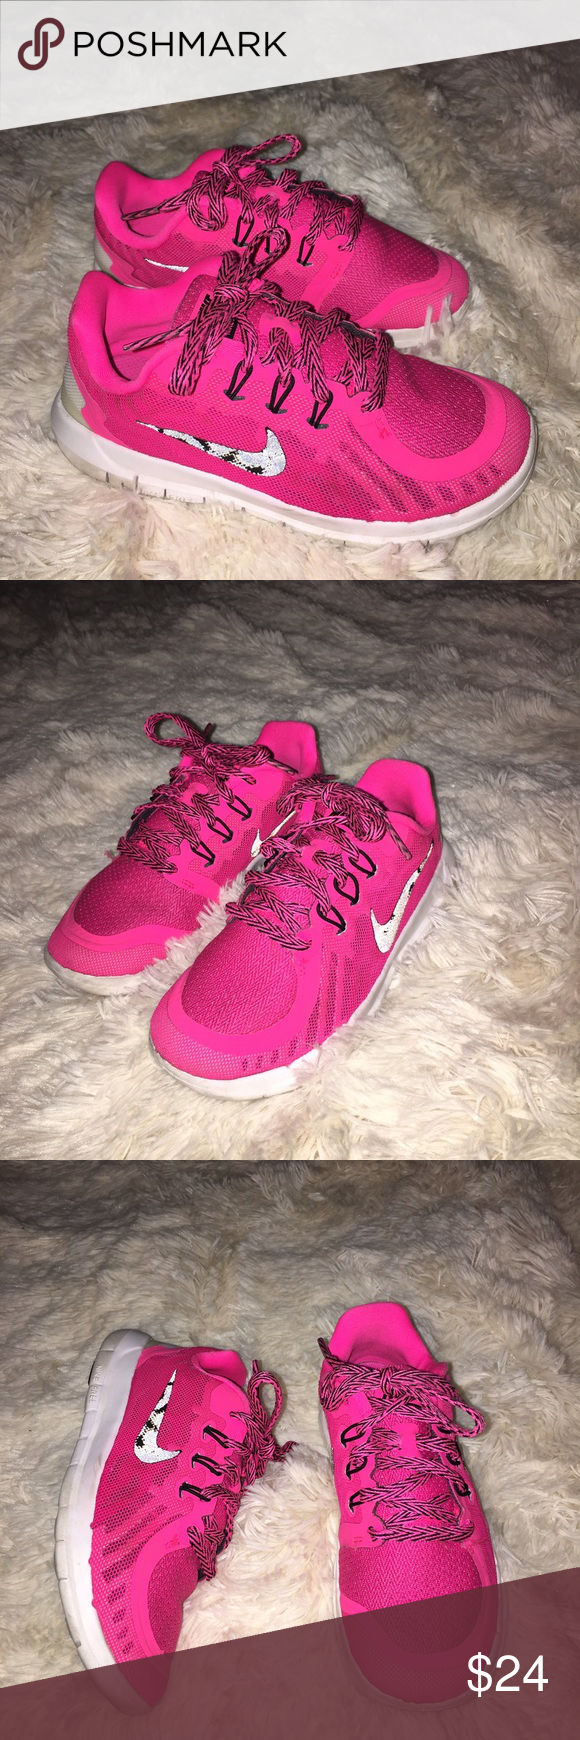 Nike little girls 13c running shoes Great condition girls 13c reflective  Nike swoosh Nike Shoes Sneakers